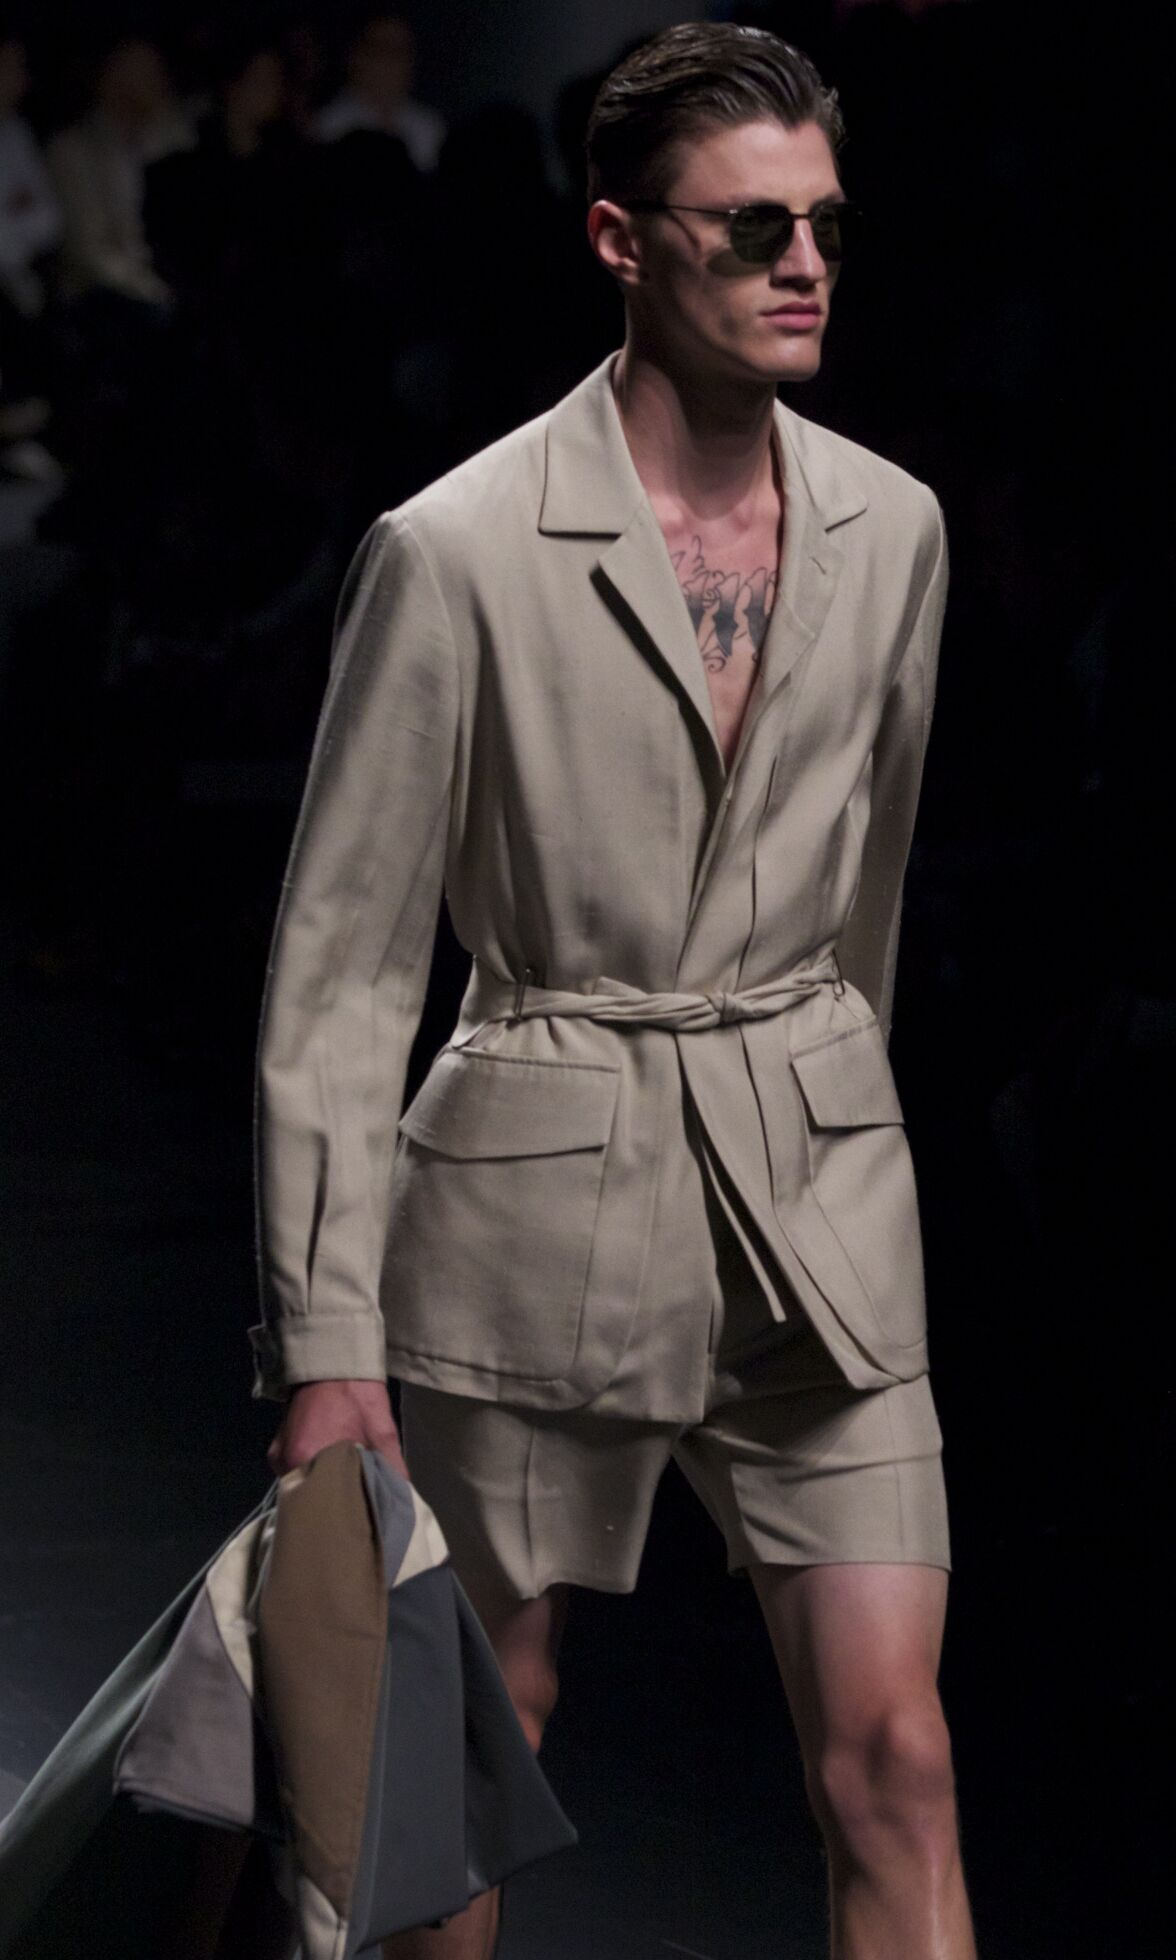 Catwalk Ermenegildo Zegna Man Fashion Show Summer 2014